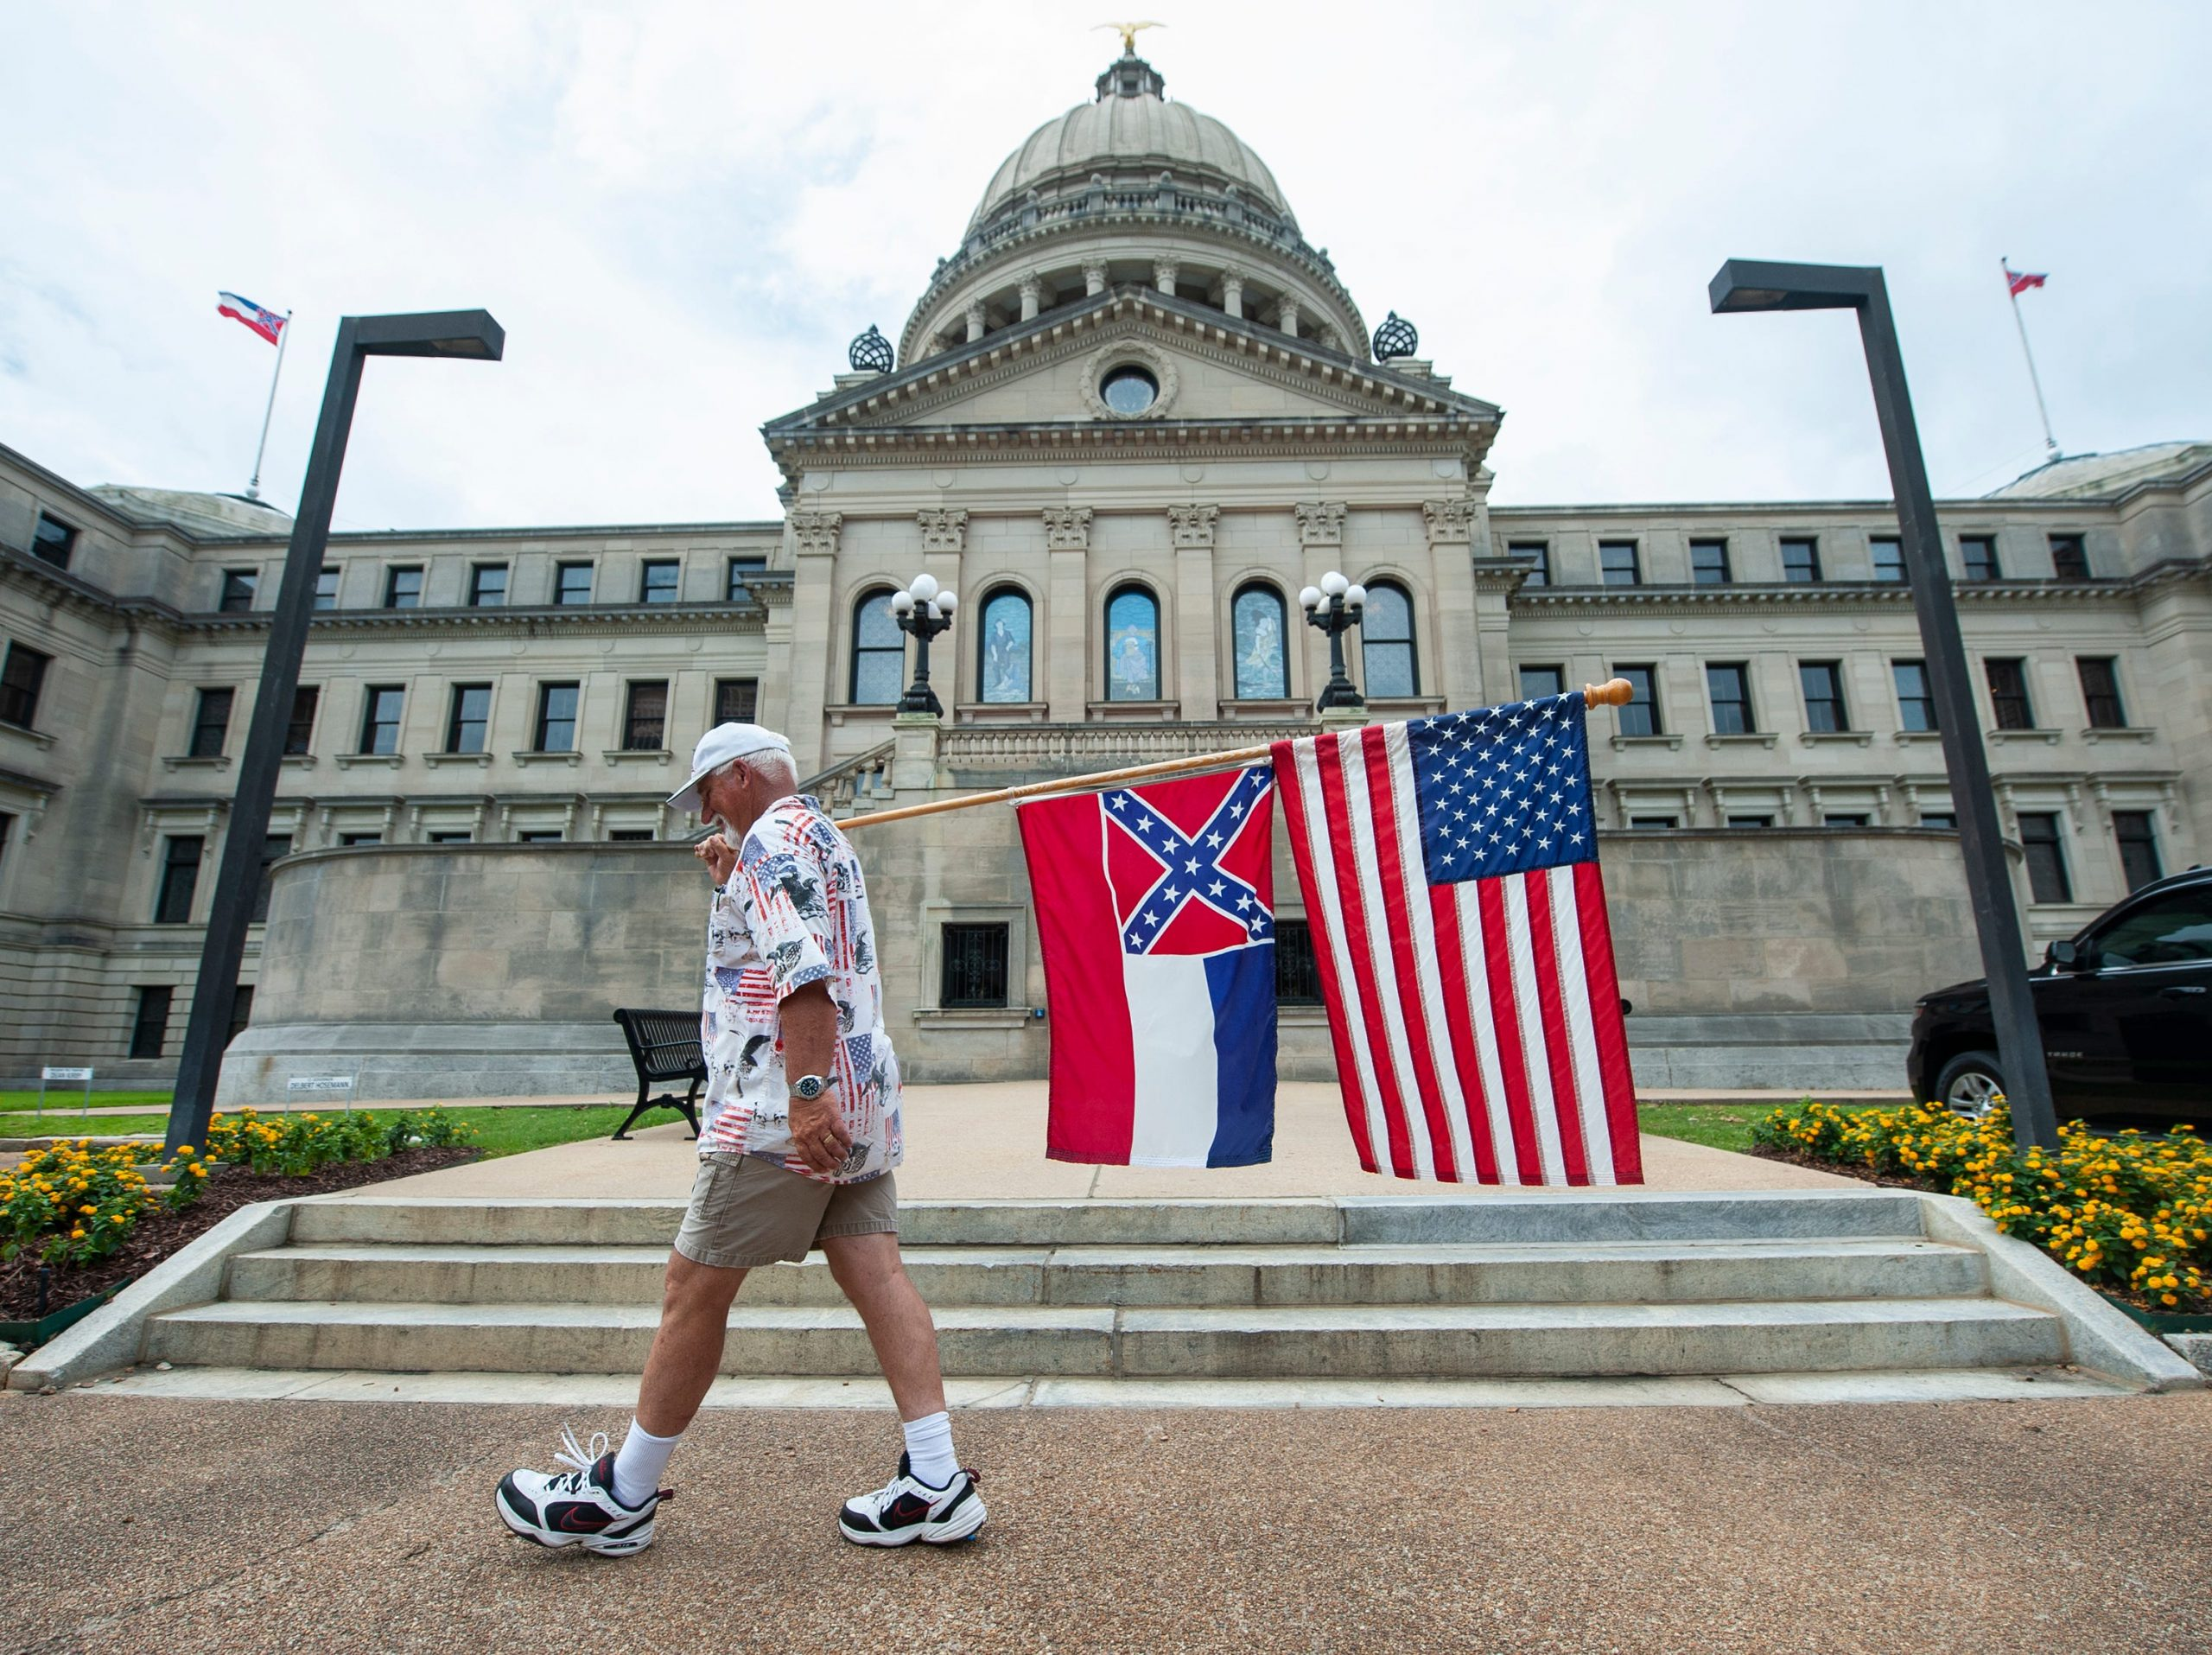 Mississippi approves the removal of the Confederate flag from the state flag amid controversy over racist symbols